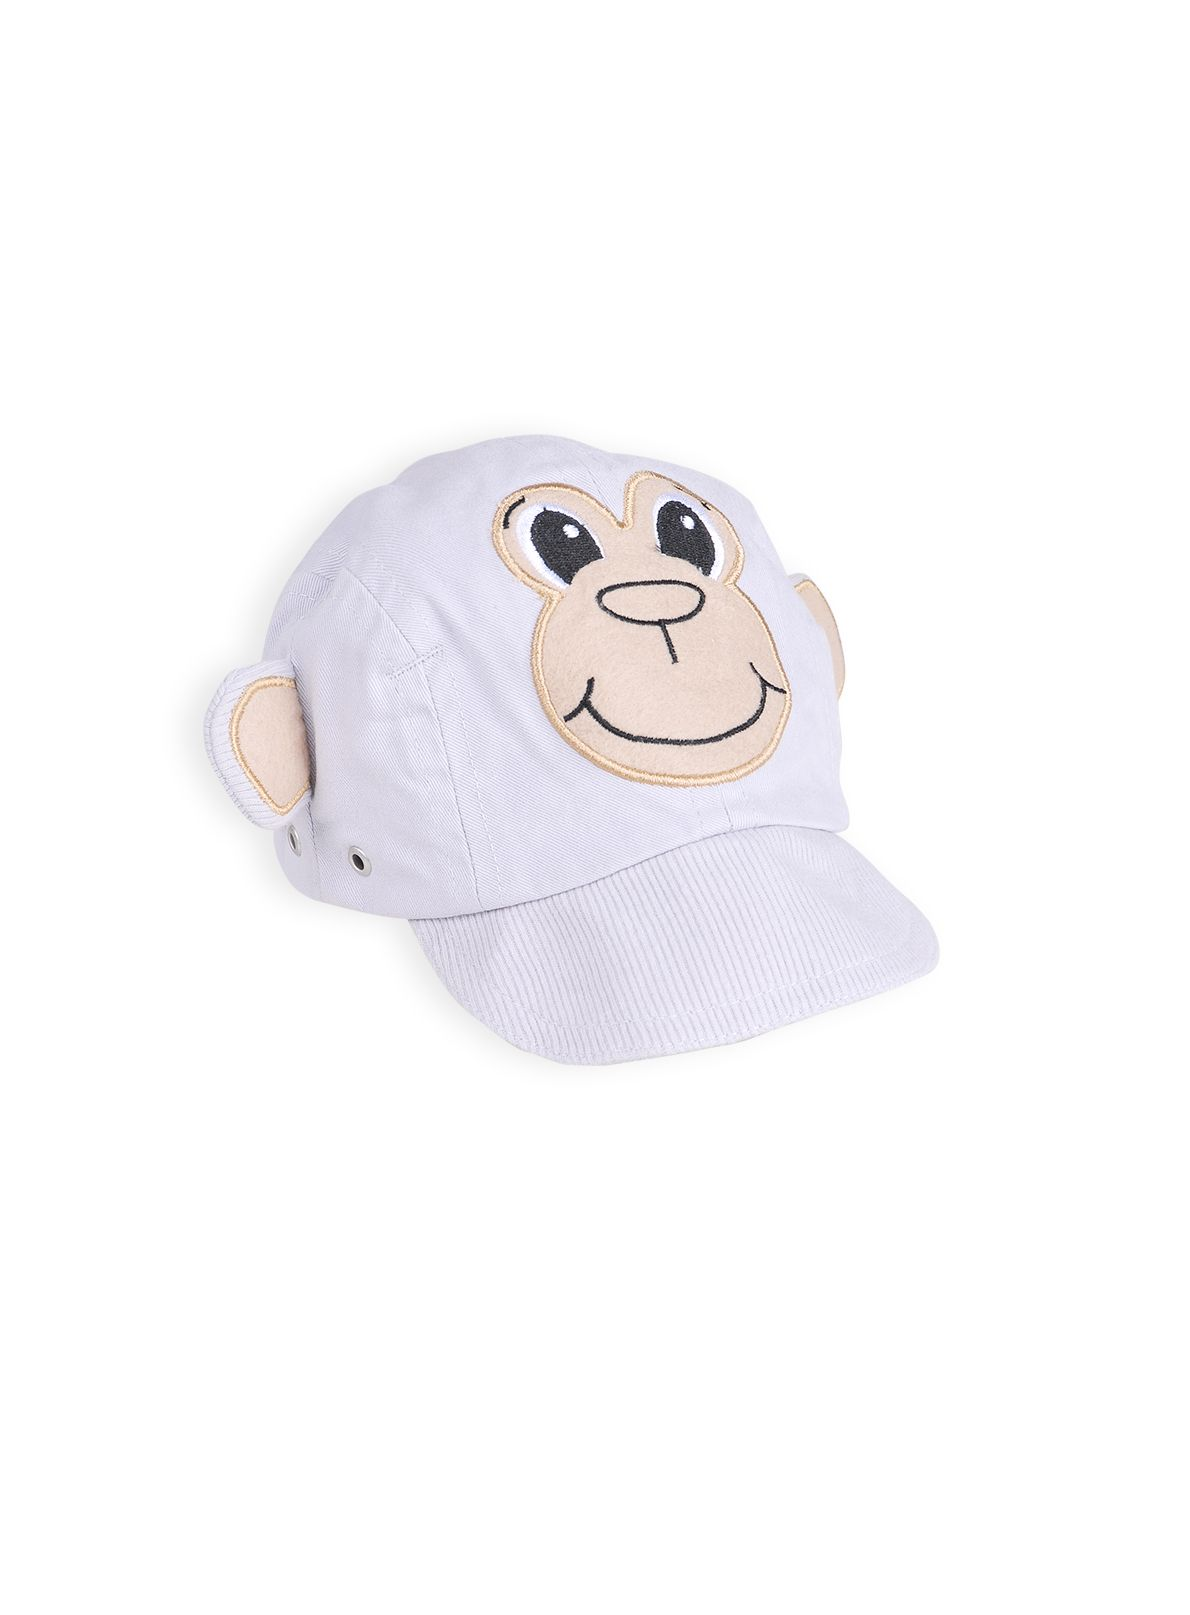 Boys monkey canvas cap